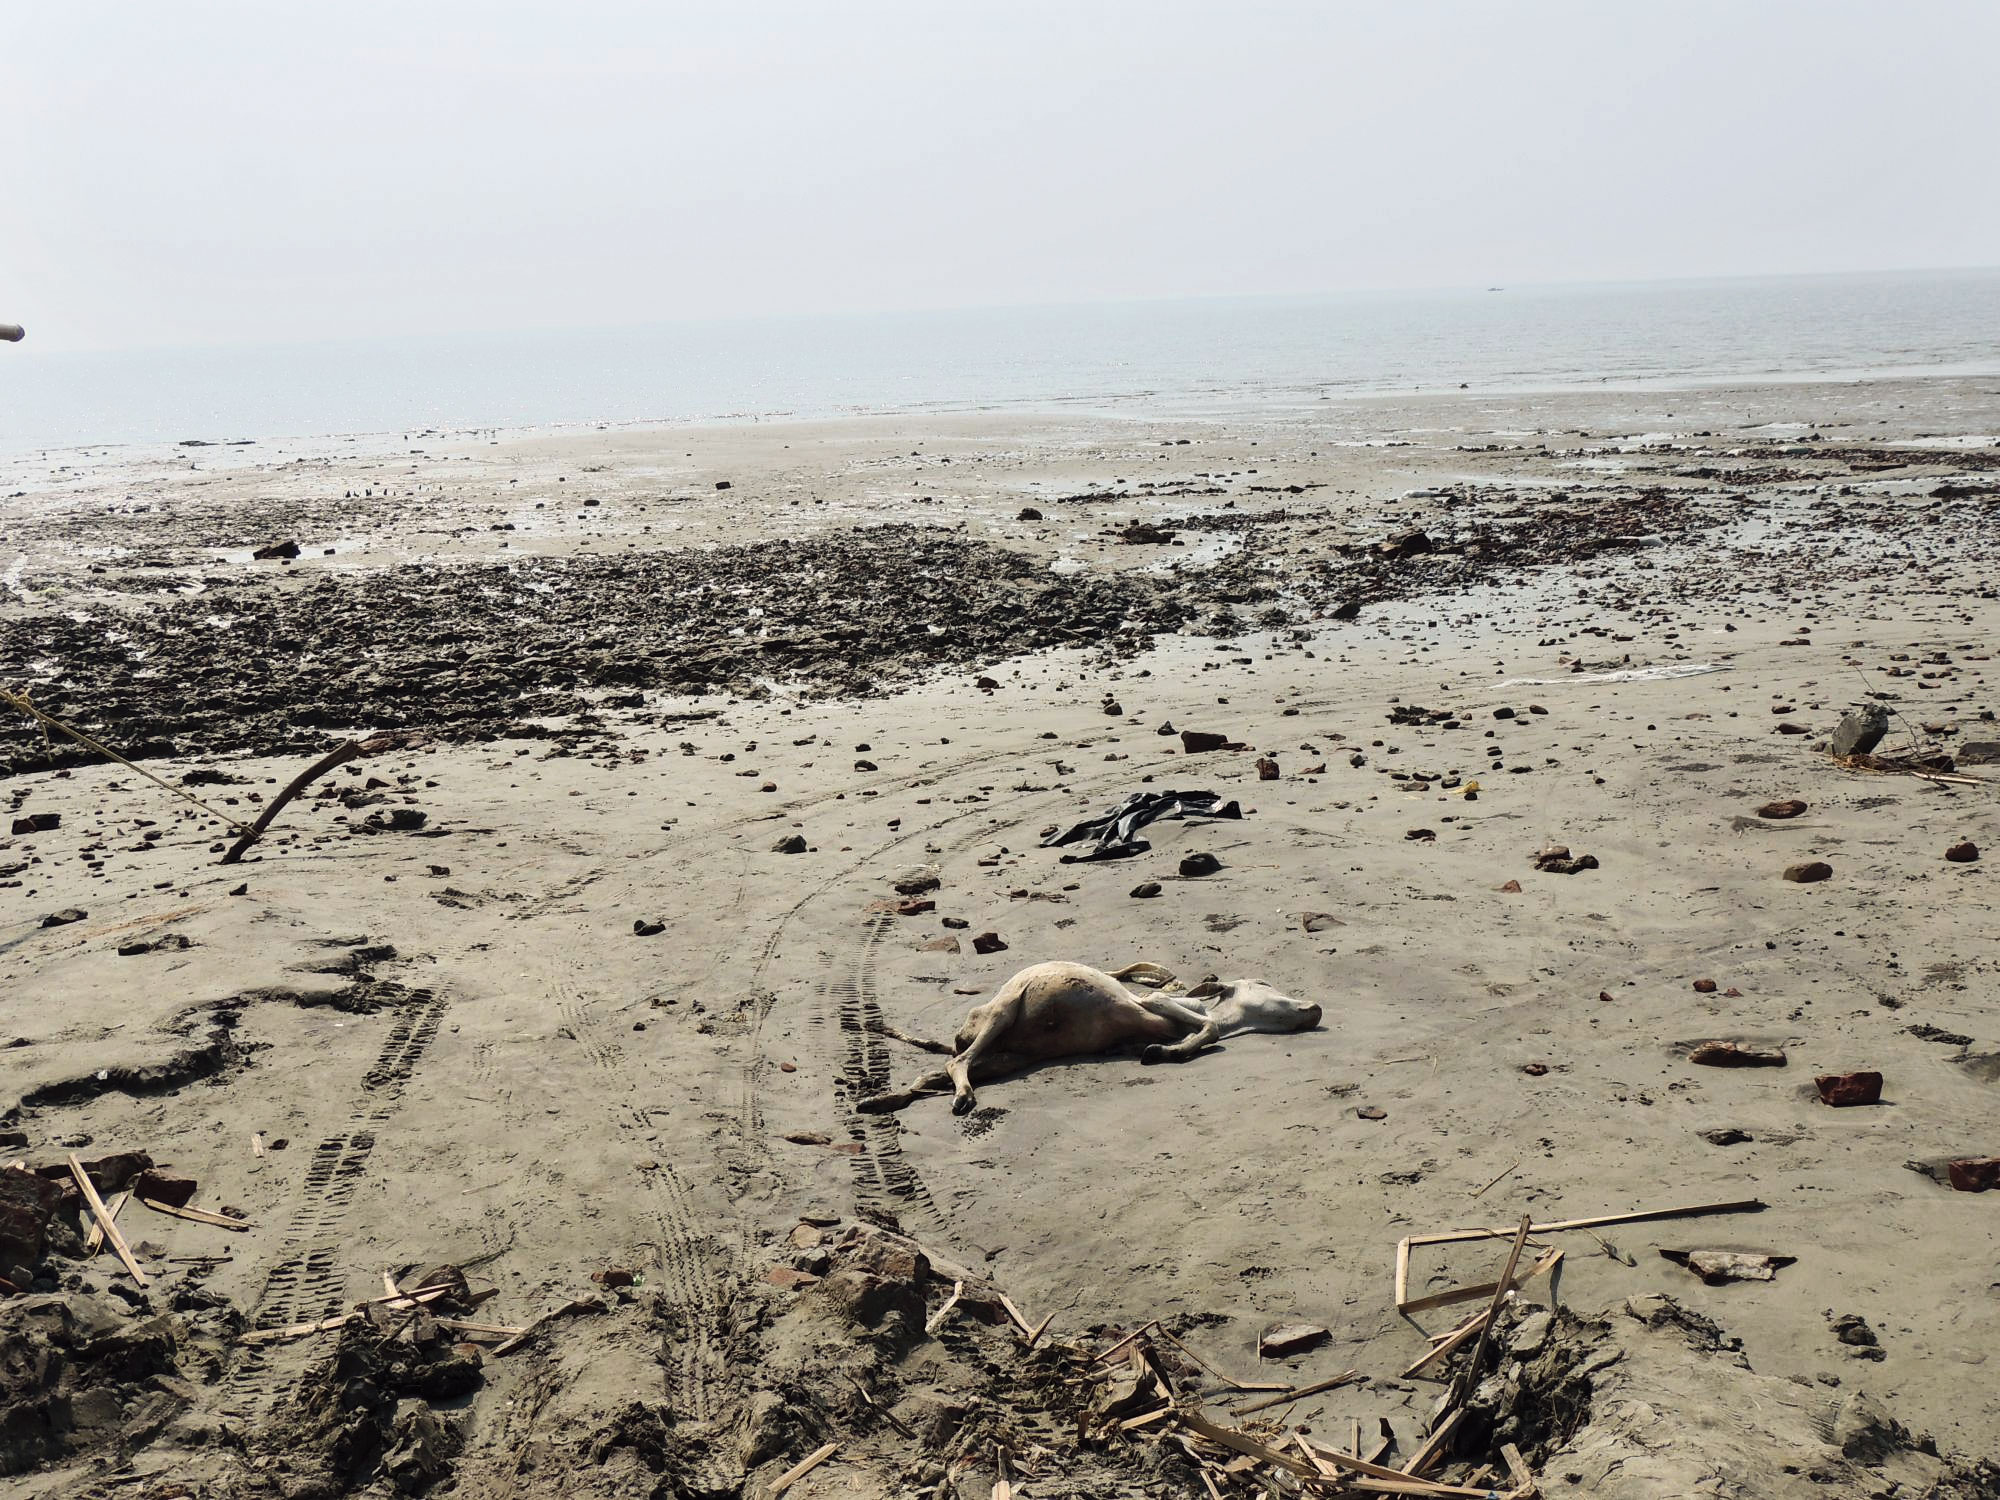 A carcass lying on Fraserganj beach that was destroyed by Cyclone Bulbul, with nothing left standing.